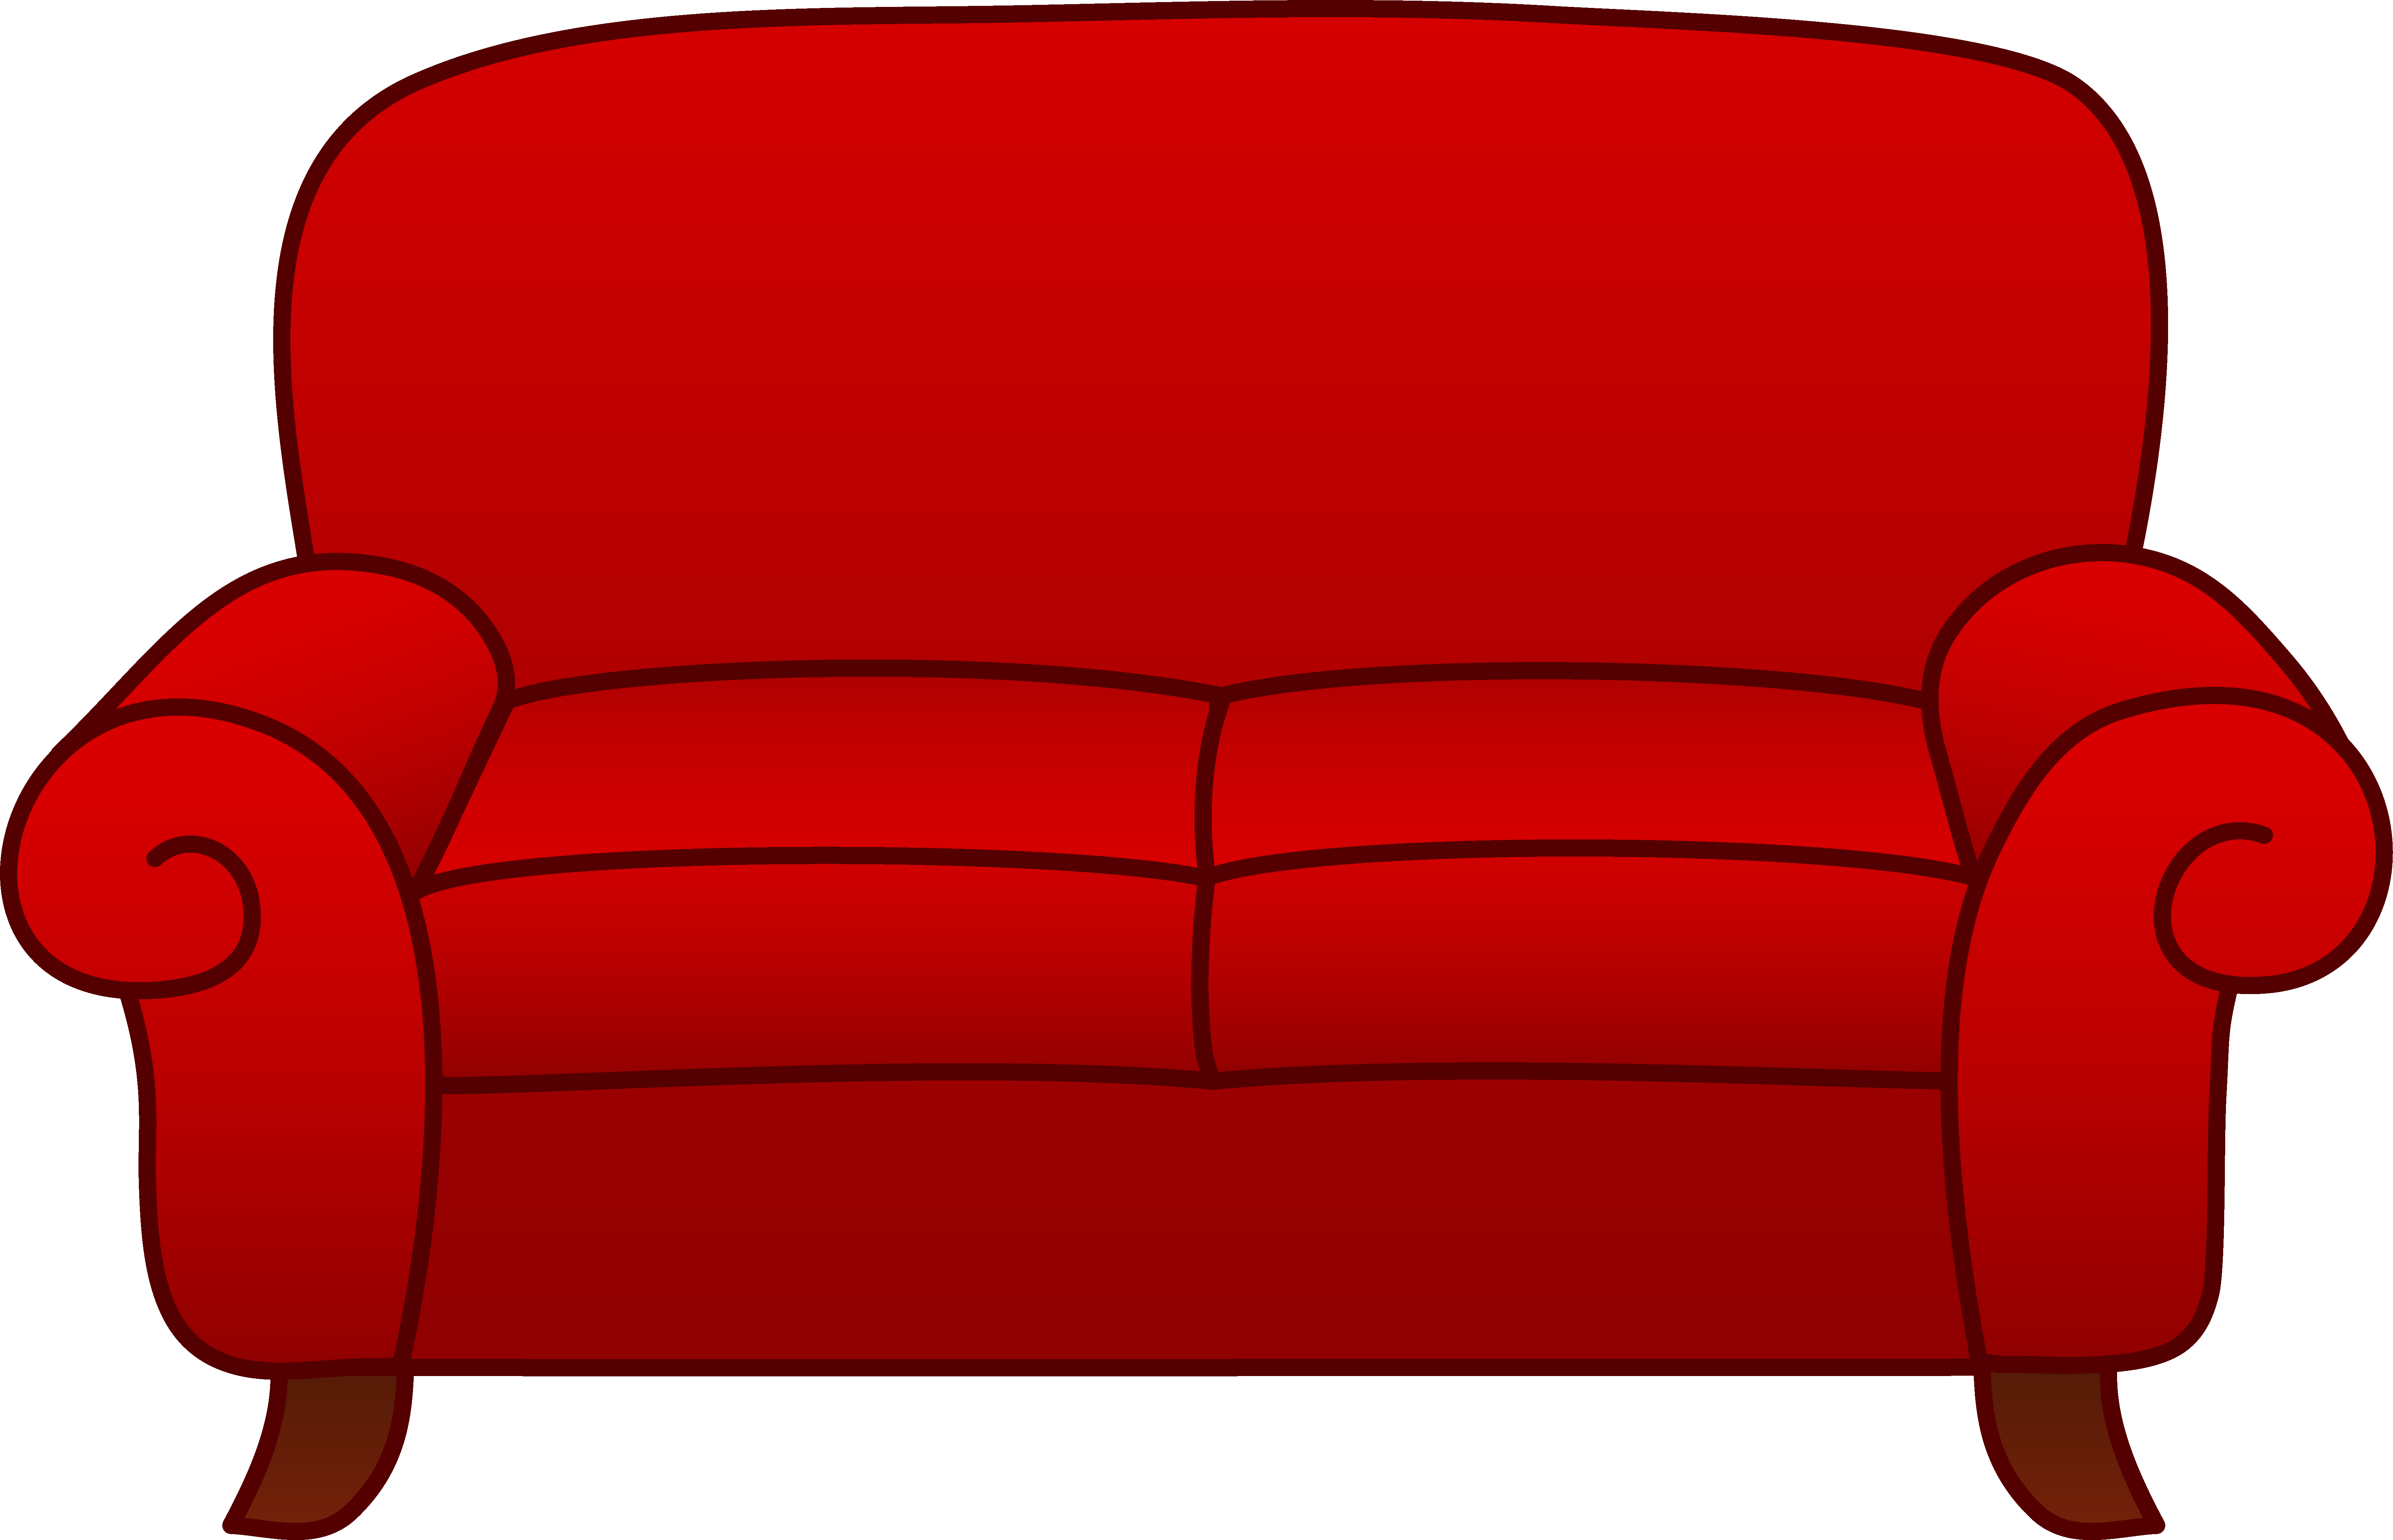 Room at getdrawings com. Furniture clipart animated